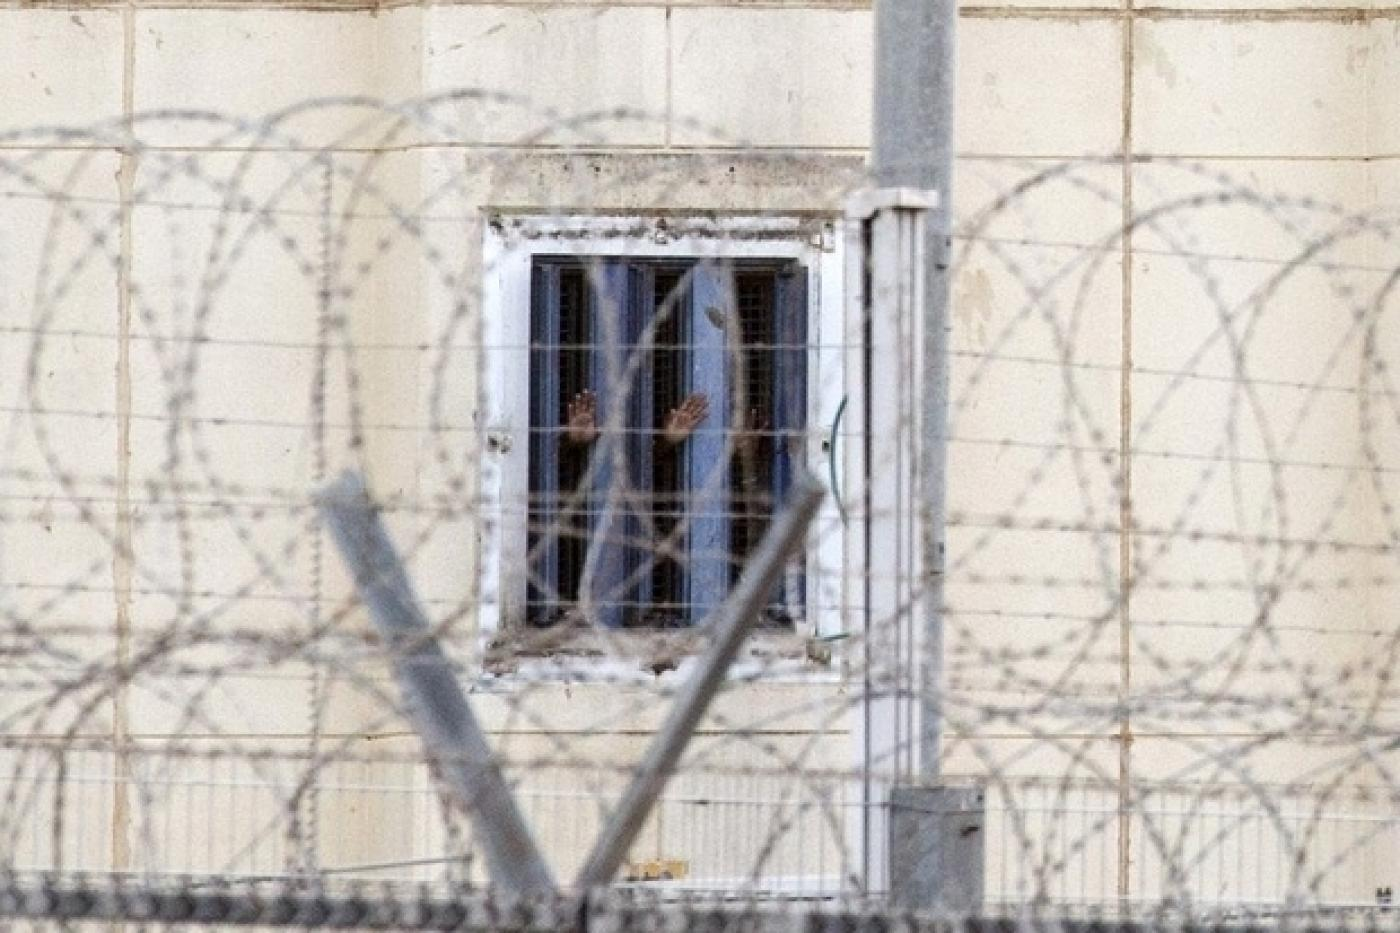 Call for Urgent International Move to Release Detained Palestinians